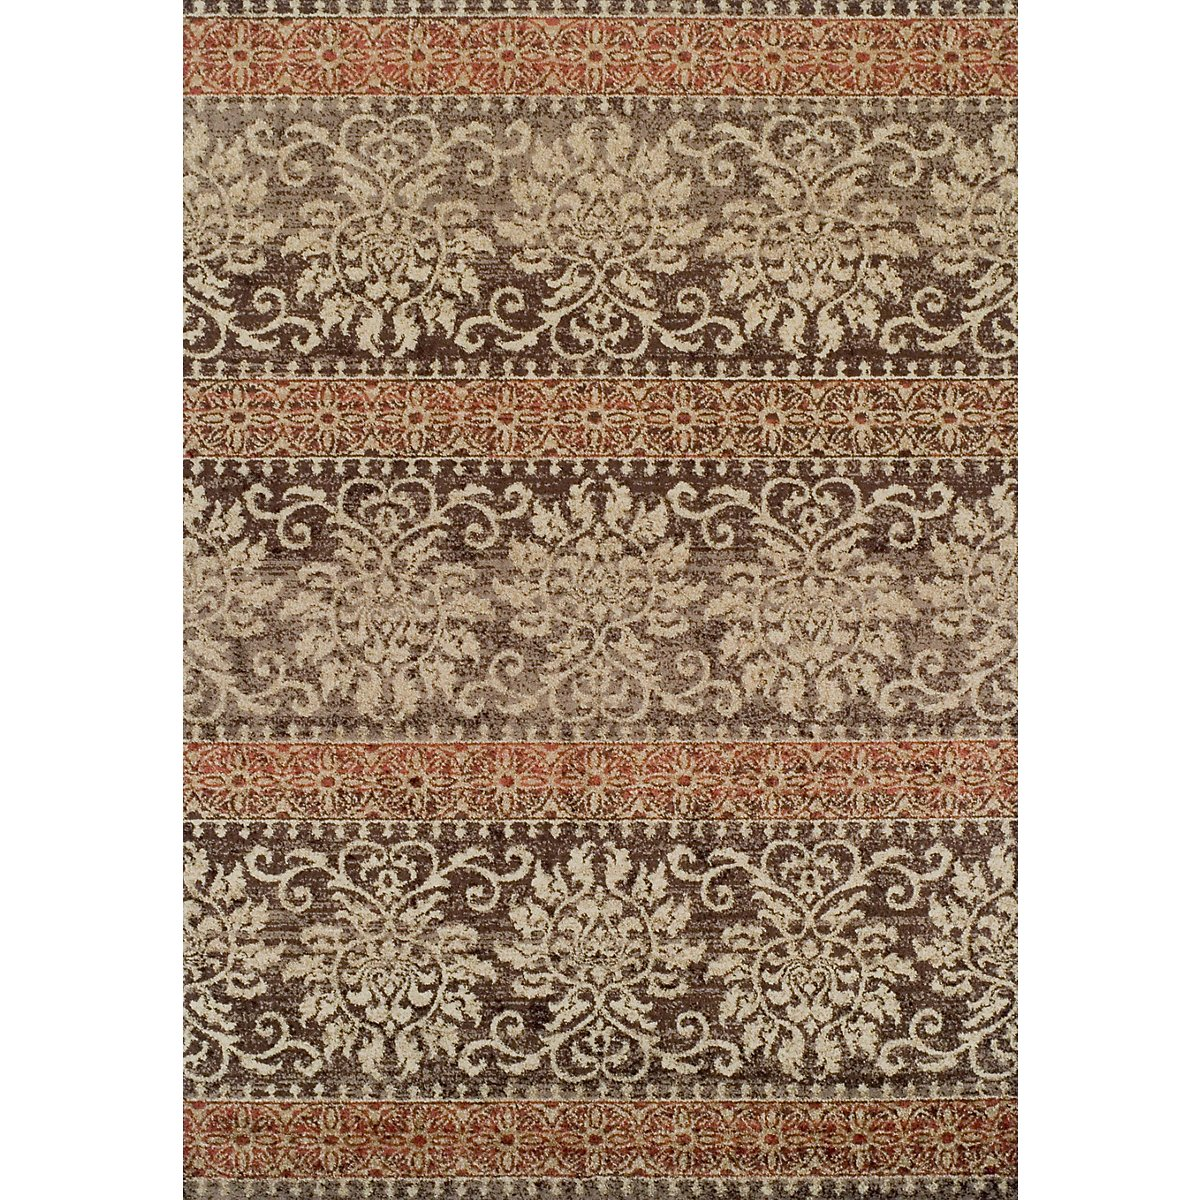 City Furniture: Gala Rust 5X7 Area Rug